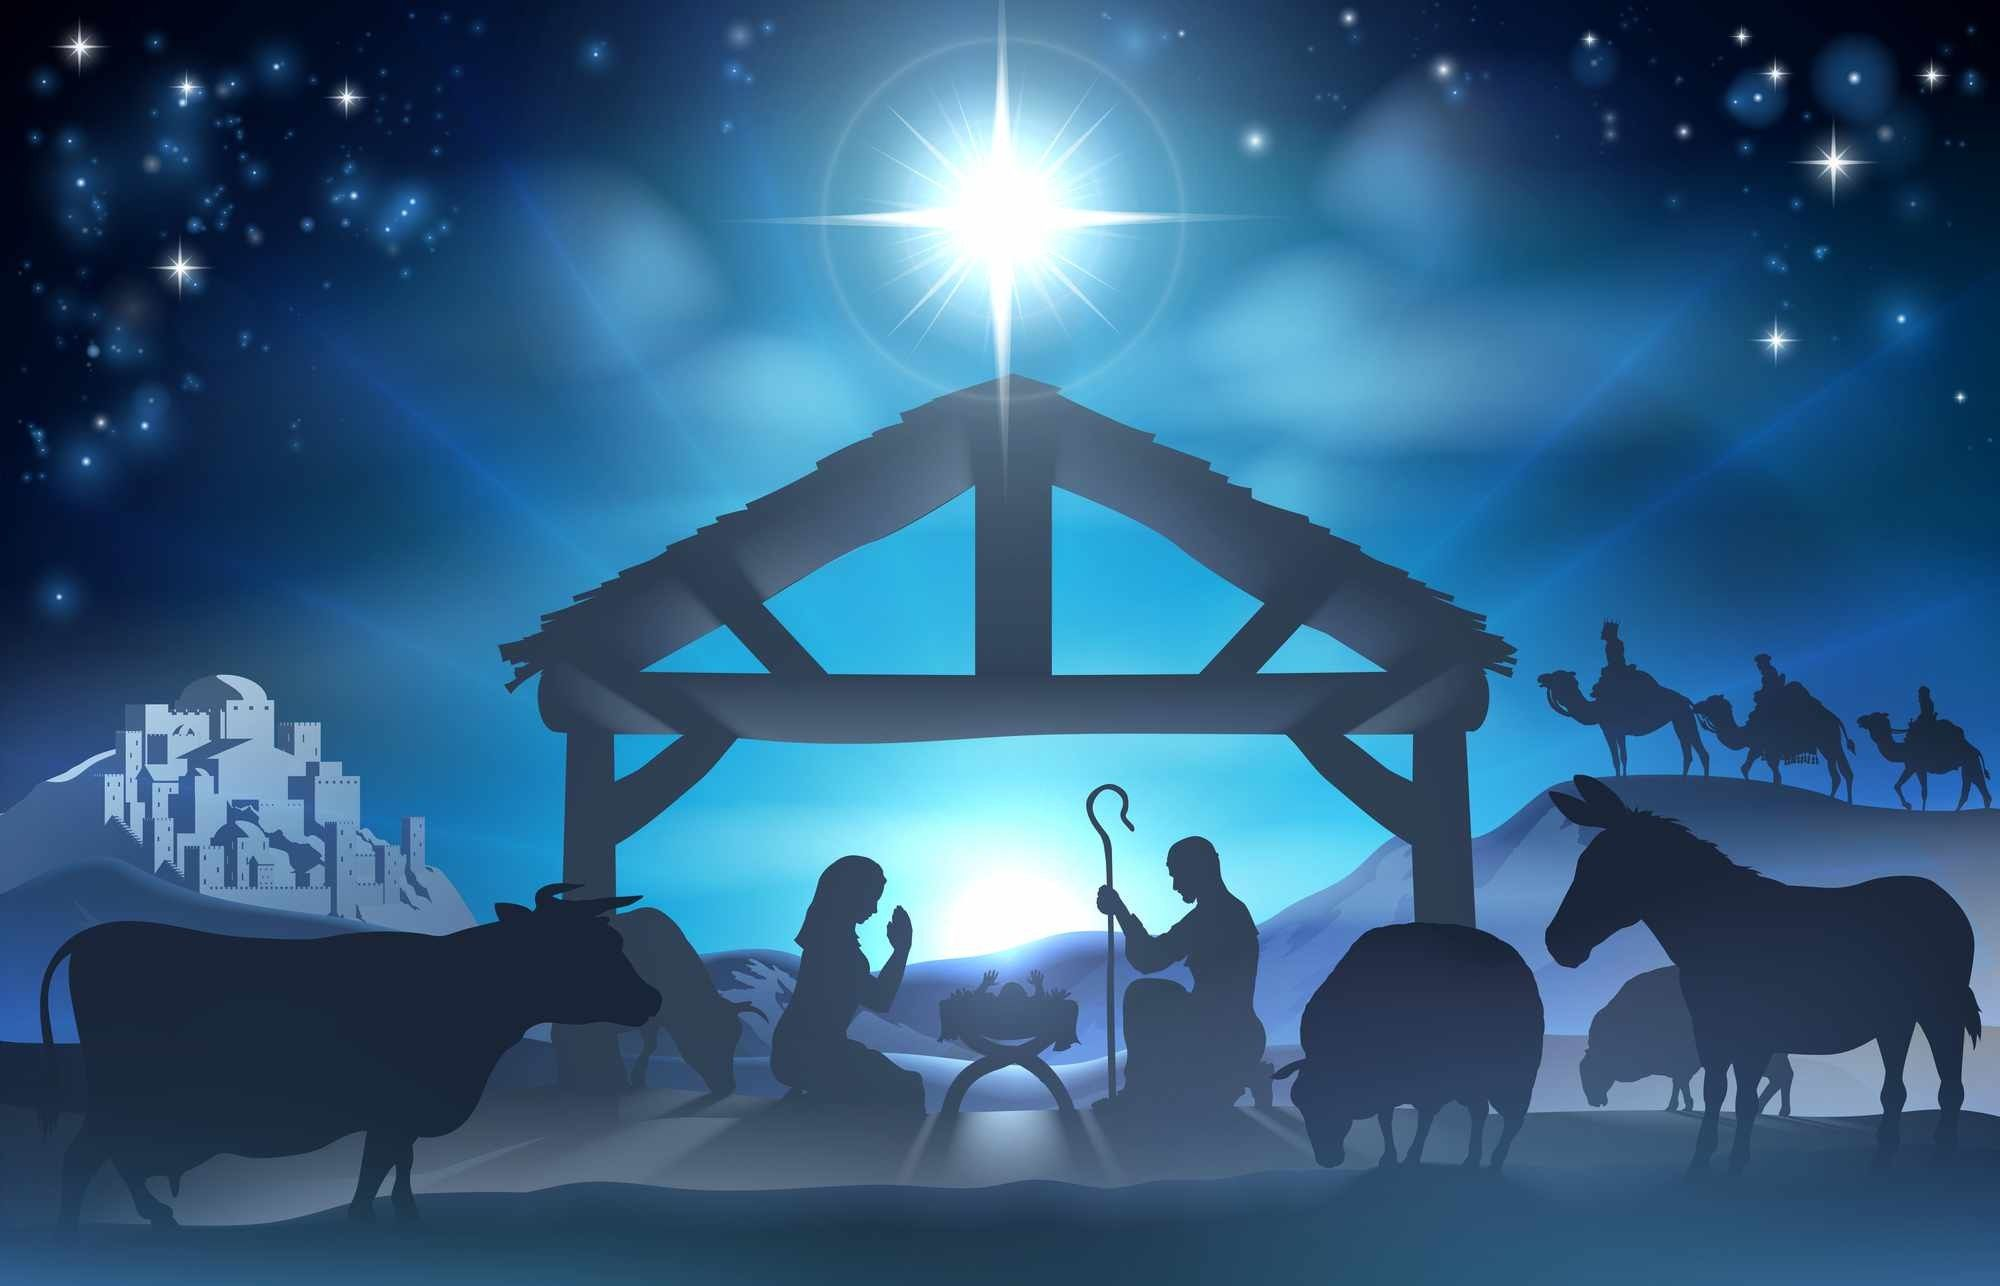 Religious Christmas Wallpapers Top Free Religious Christmas Backgrounds Wallpaperaccess